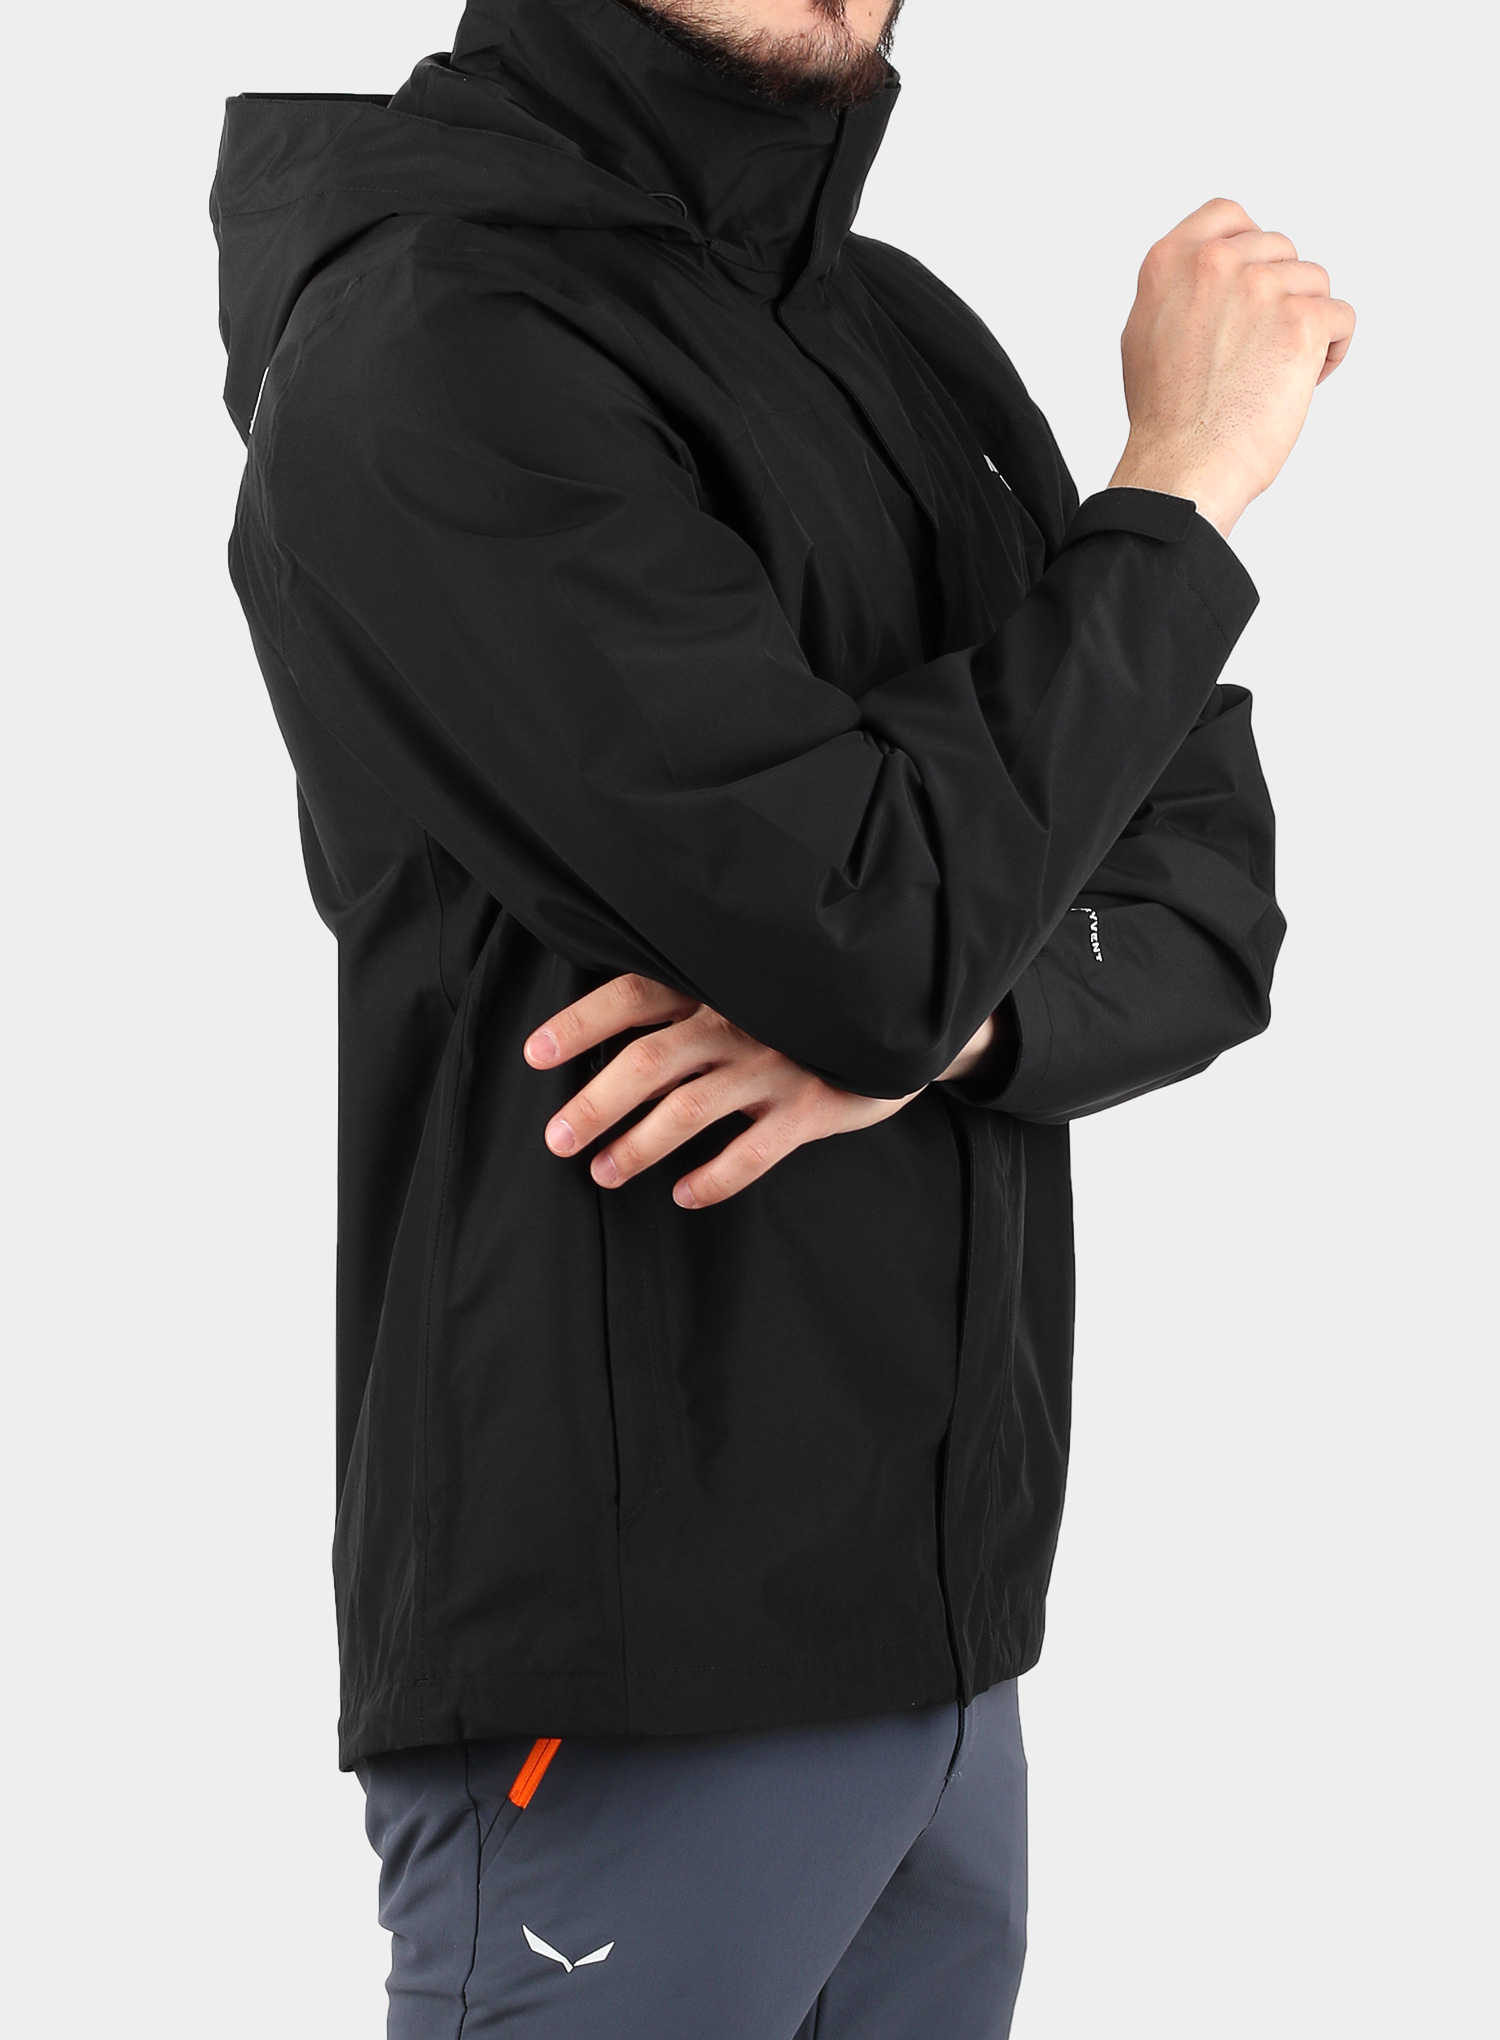 Kurtka The North Face Sangro Jacket - black - zdjęcie nr. 3